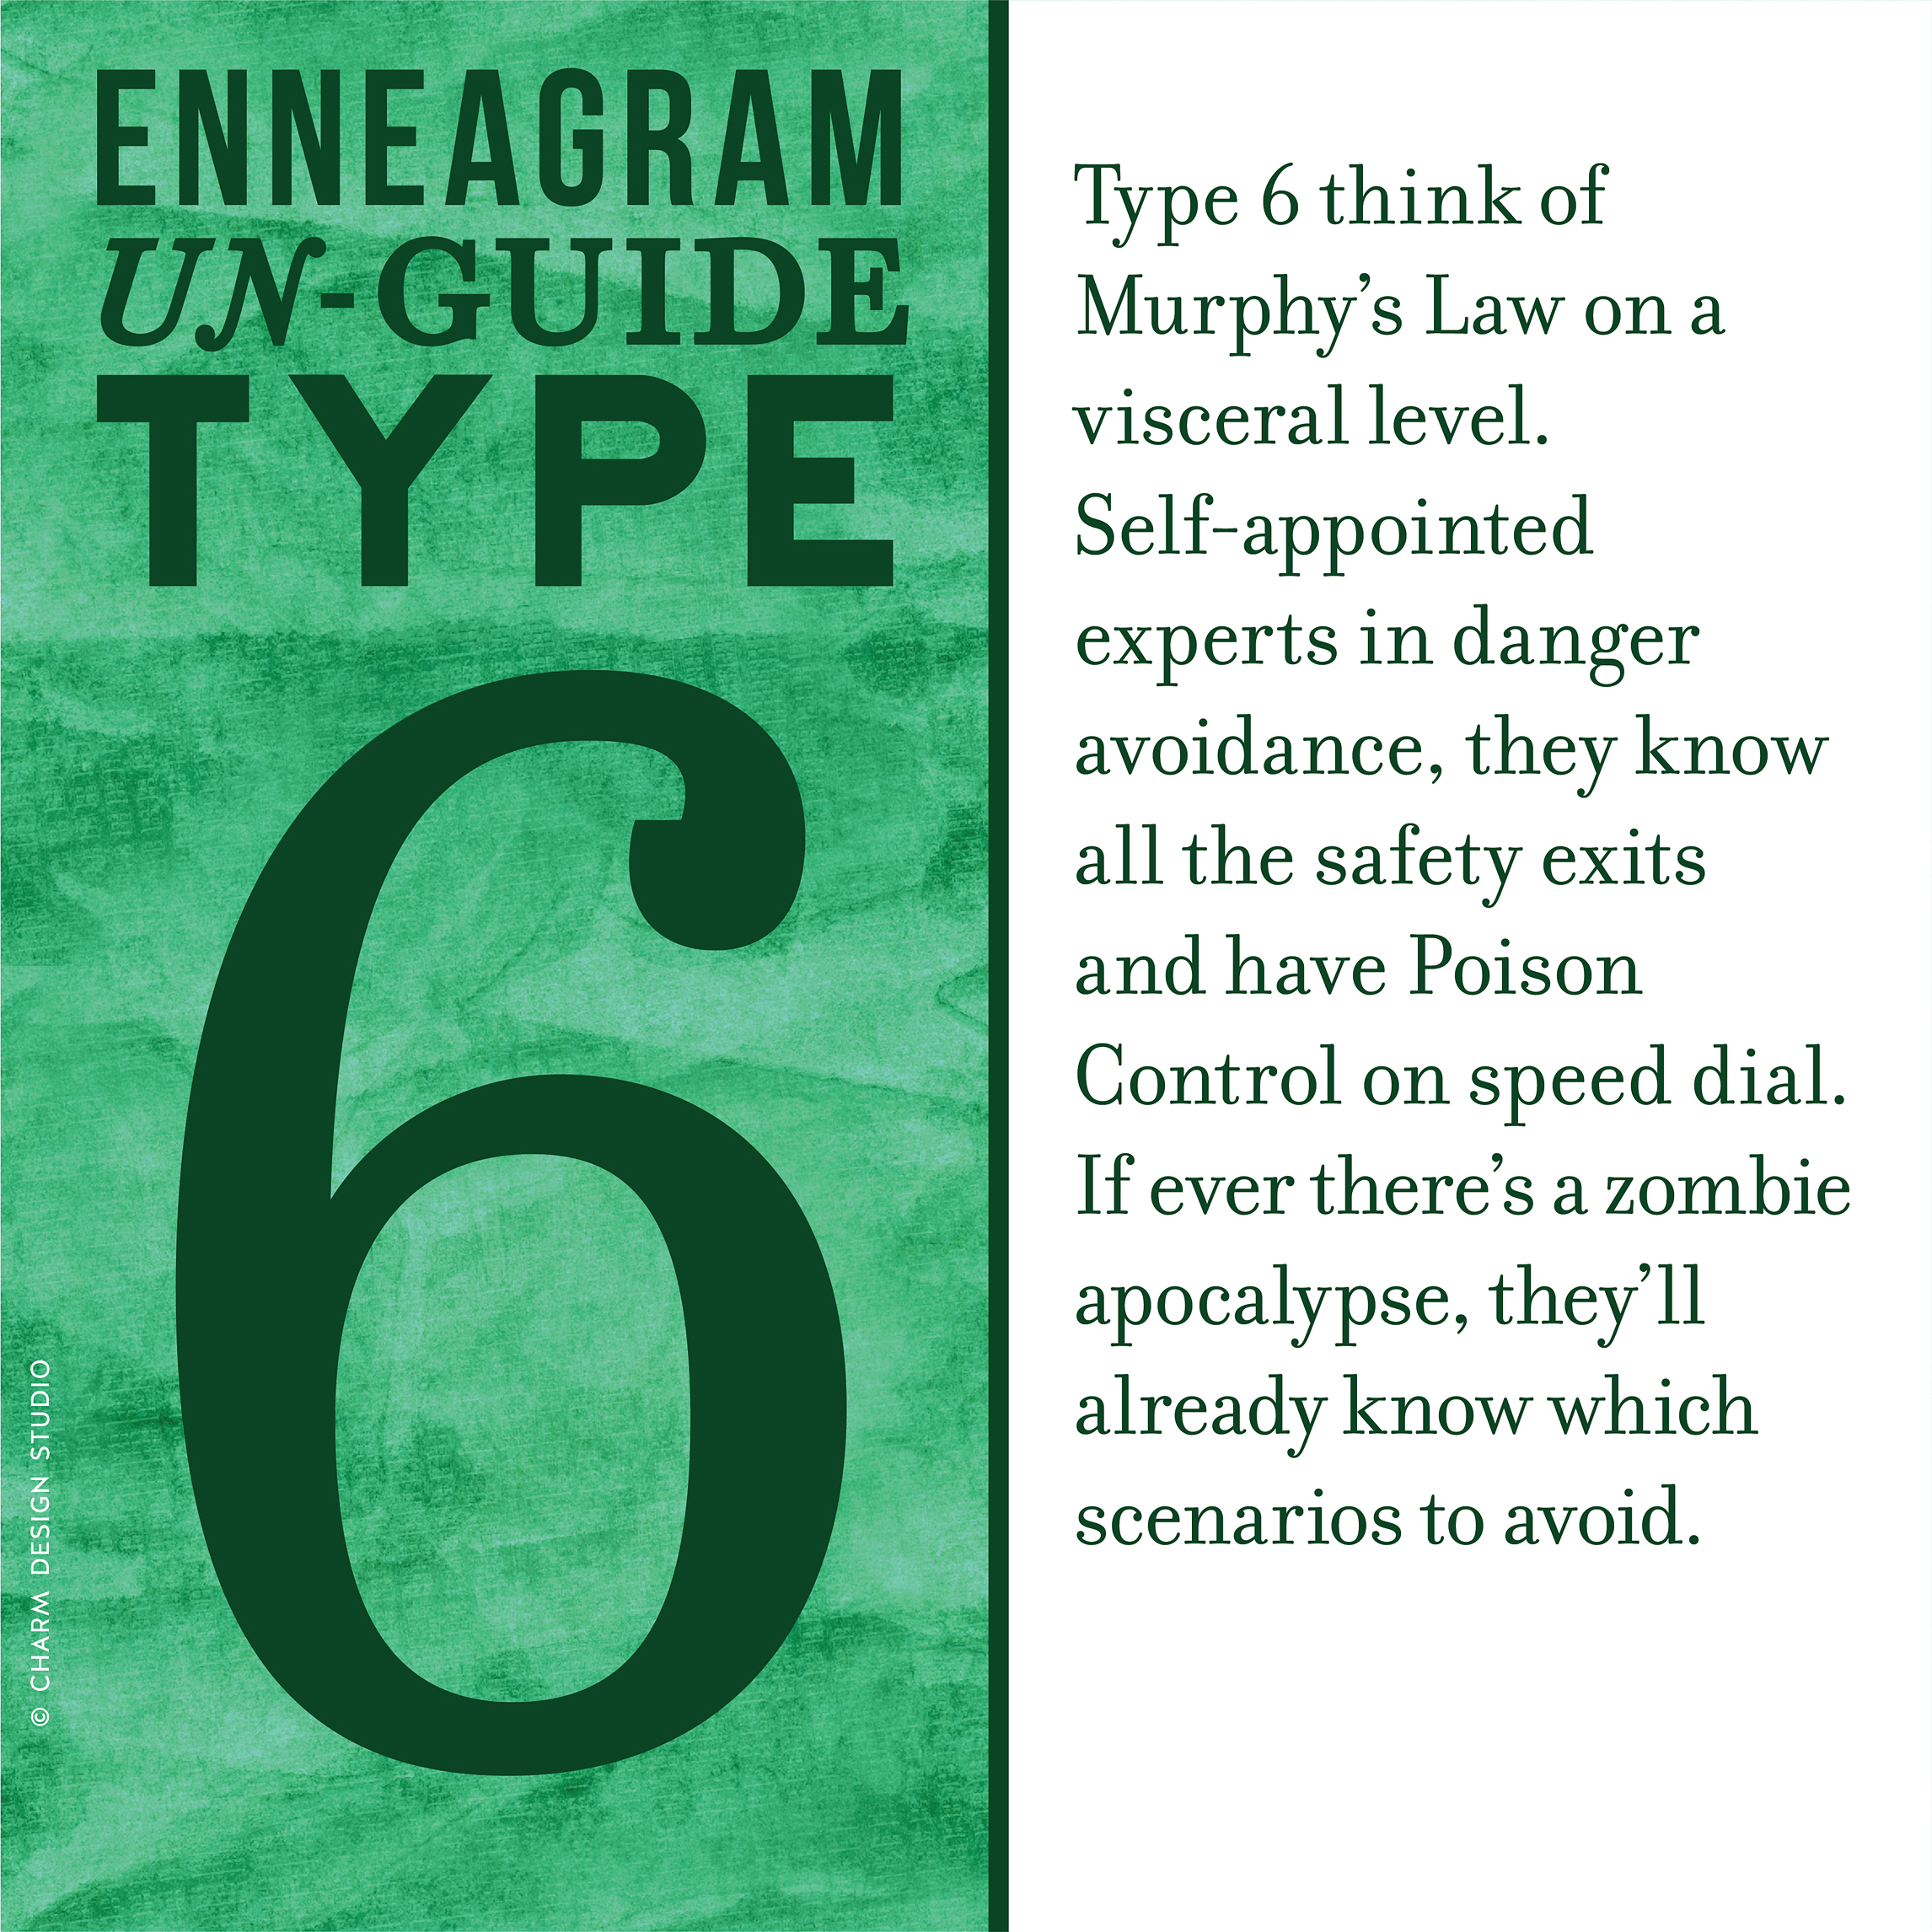 Enneagram Un-Guide: Type 6 think of Murphy's Law on a visceral level. Self-appointed experts in danger avoidance, they know all the safety exits and have Poison Control on speed dial. If ever there's a zombie apocalypse, they'll already know which scenarios to avoid. / Design and words © Charm Design Studio